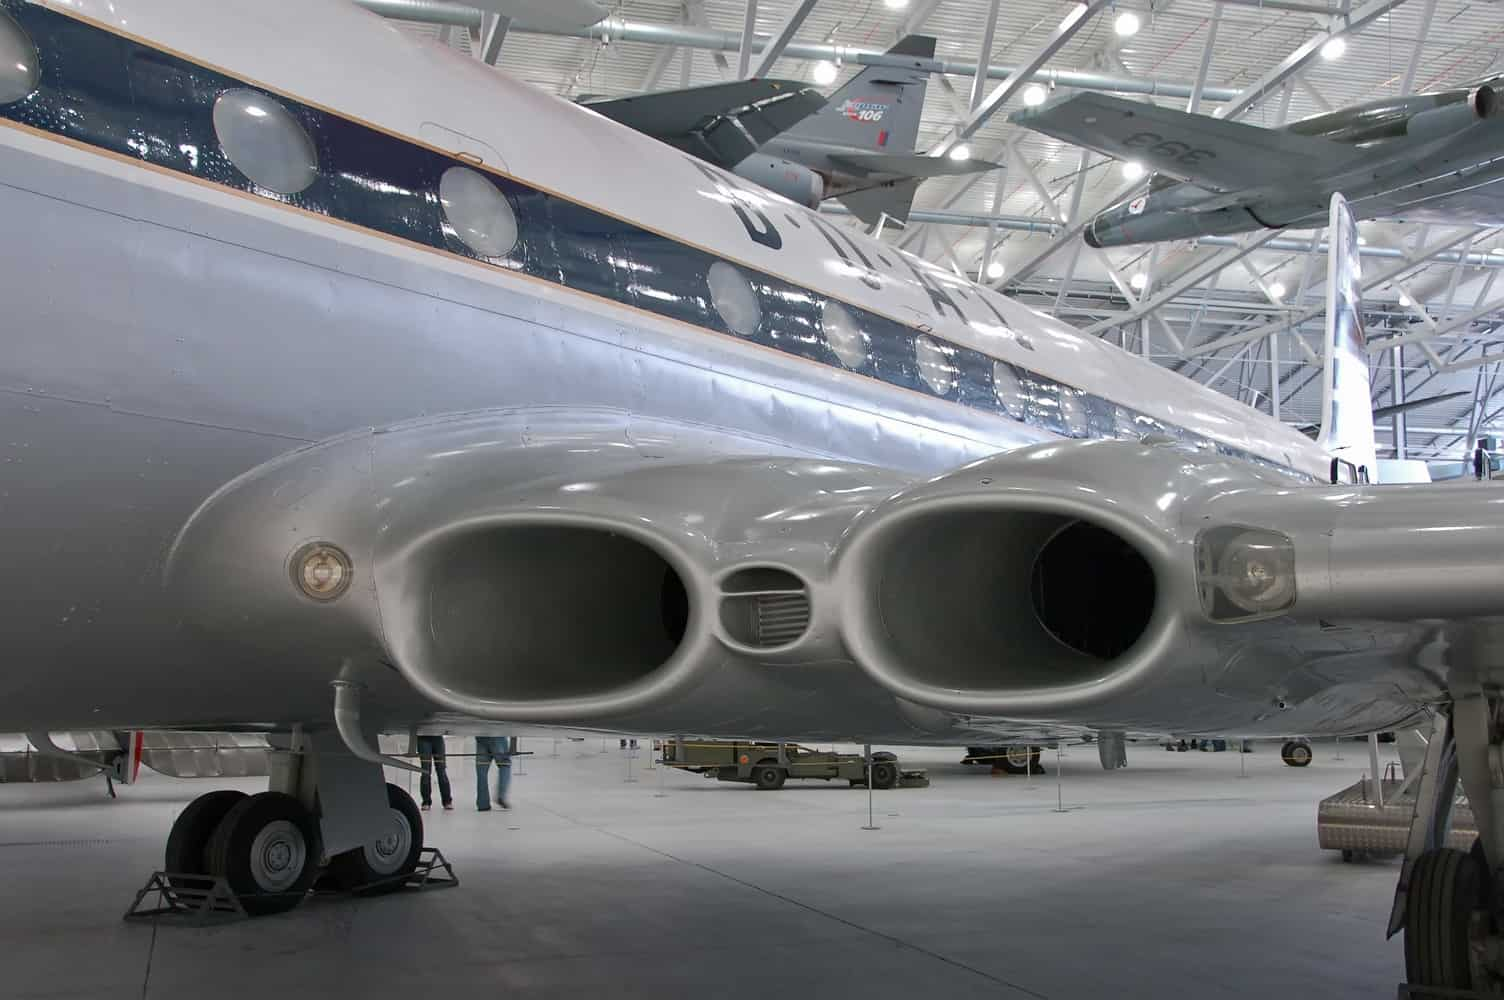 The de Havilland comet featured engines integrated into its airframe in the 1950s